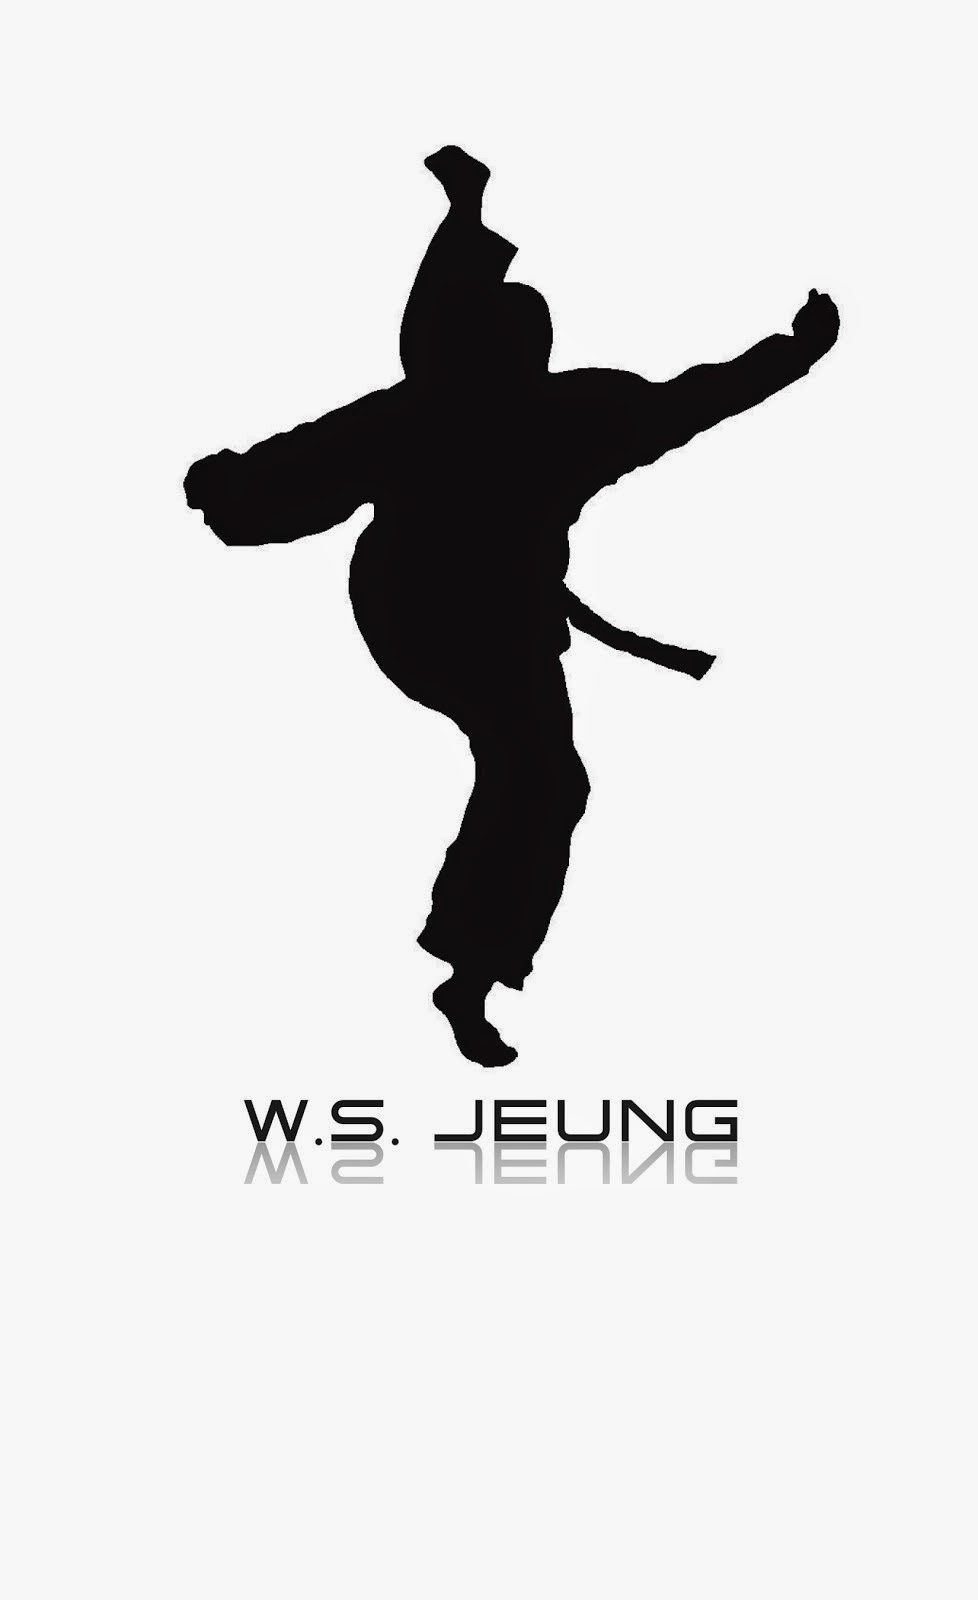 W.S. Jeung's Taekwondo Back to School Special for adults and kids click on the image below